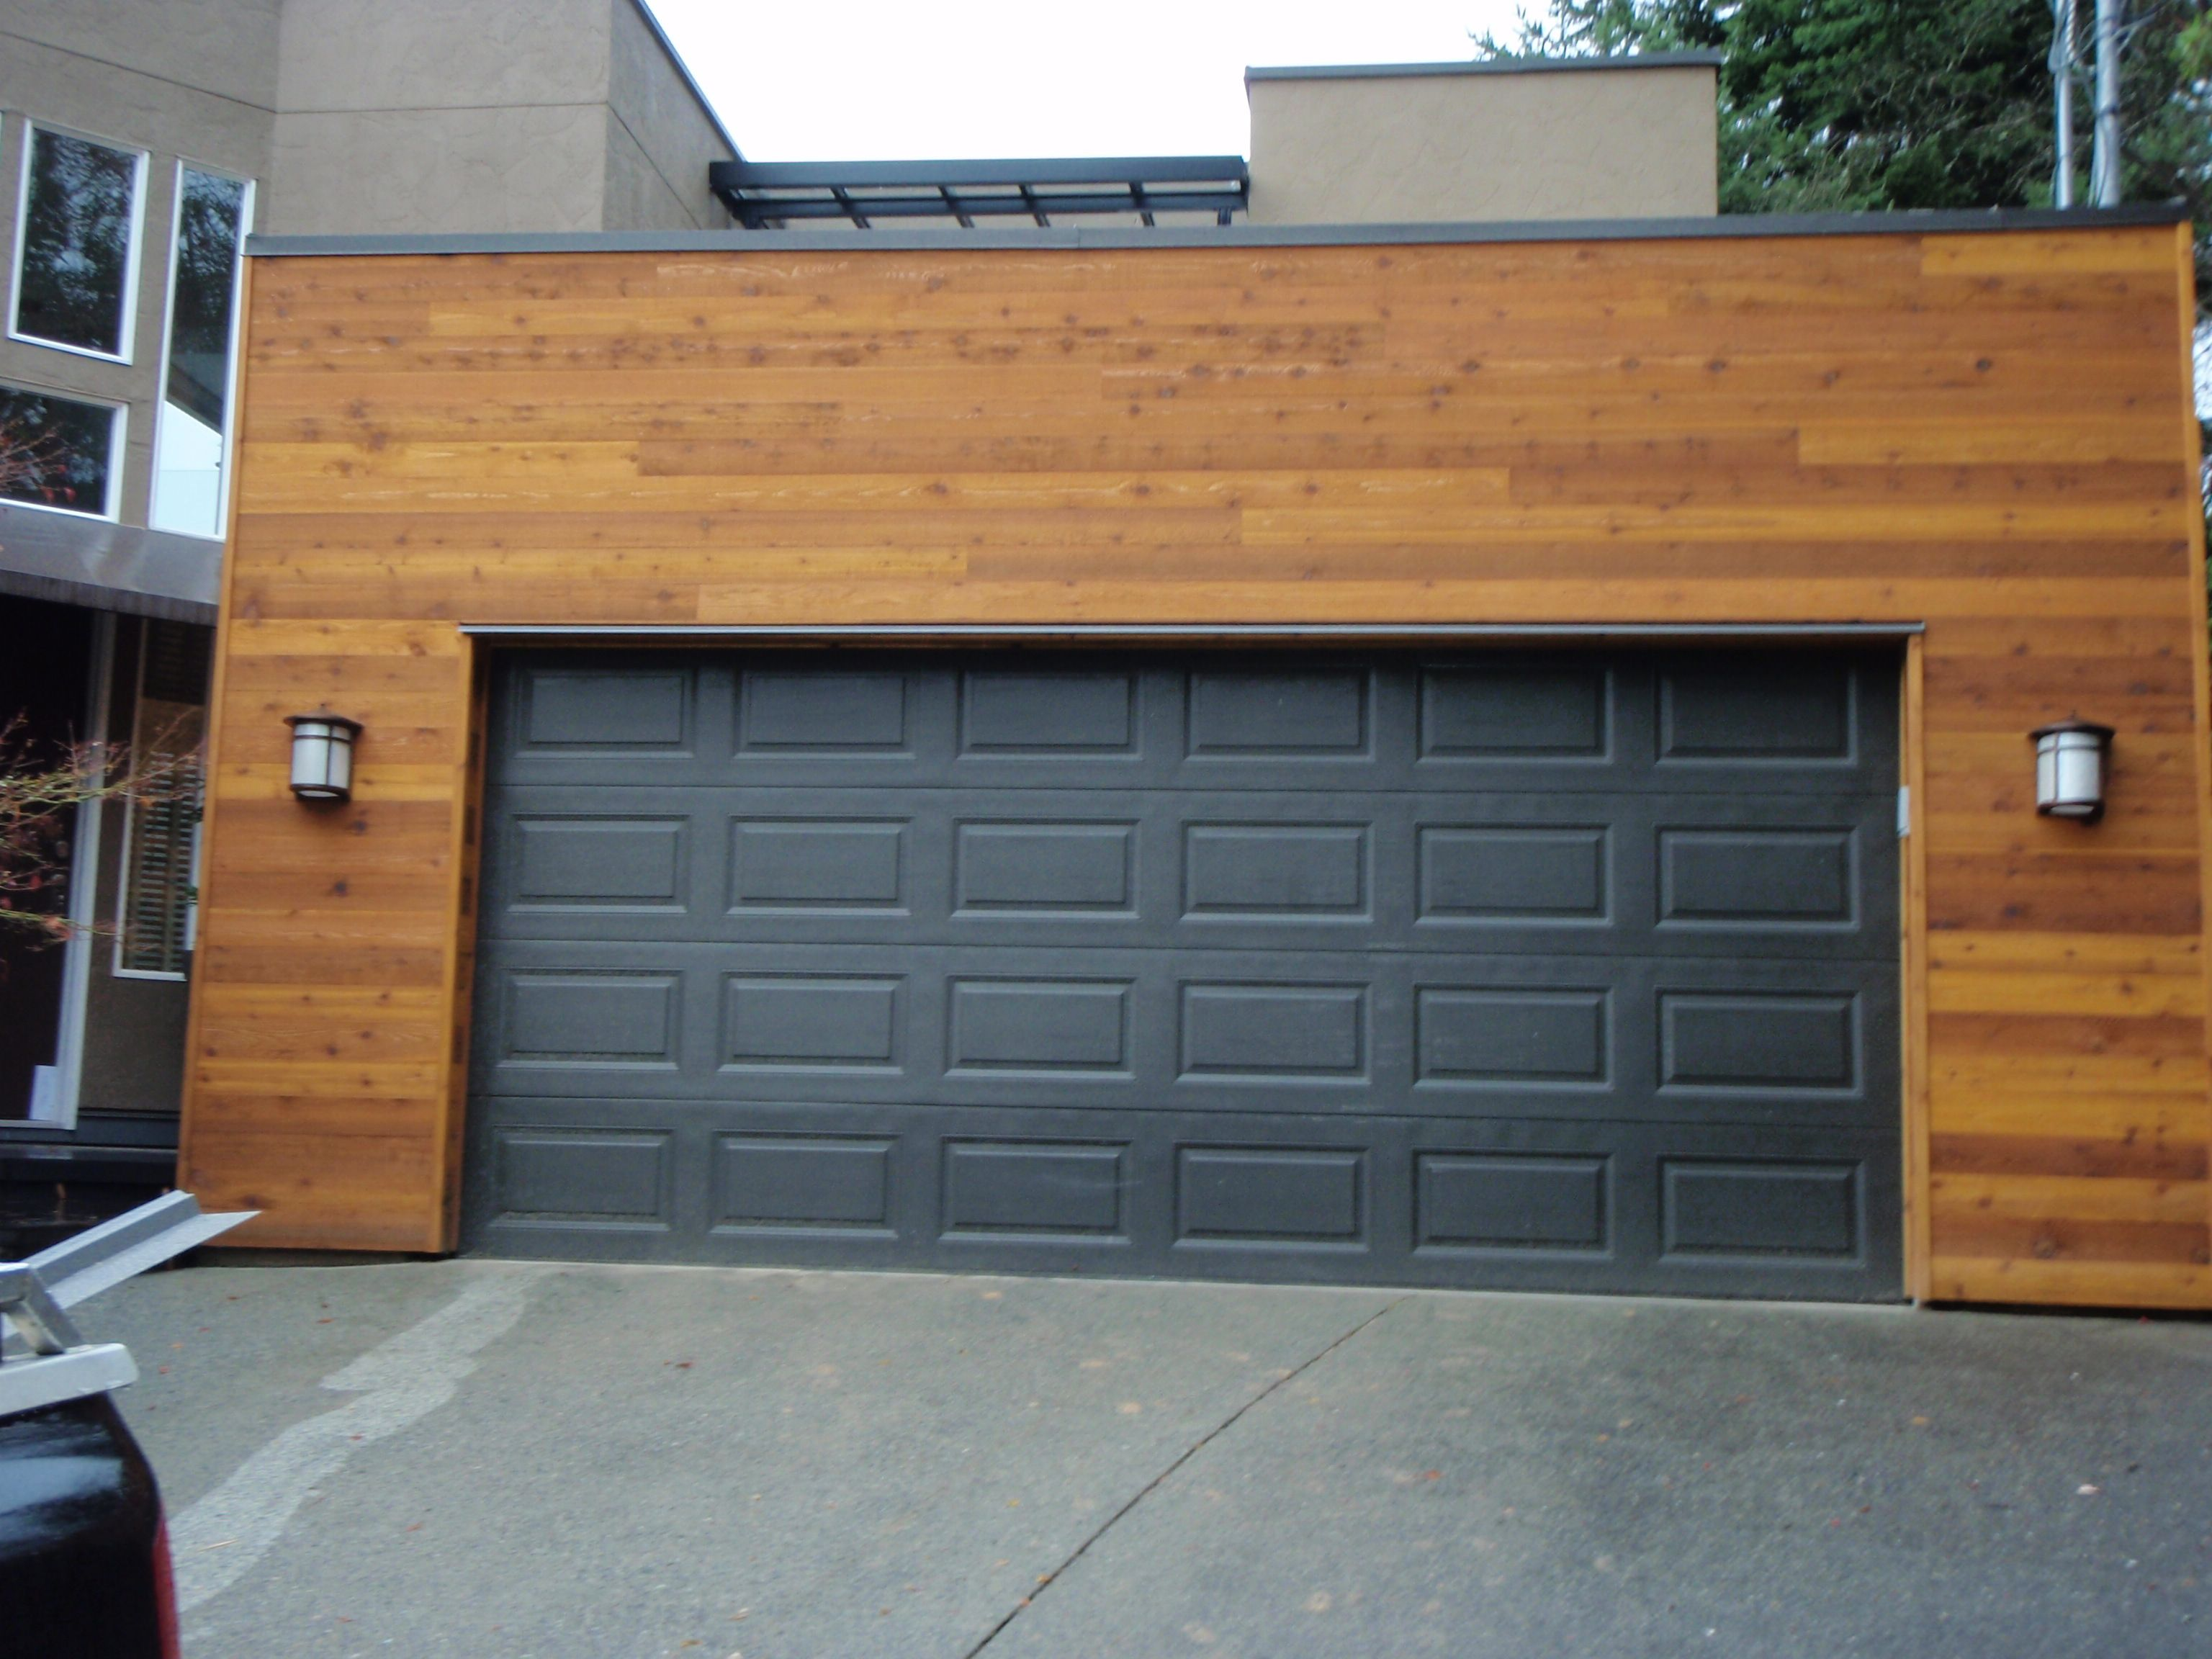 Pin By Rene Scourey On Exterior Paint Colors Wood Siding Exterior Exterior House Remodel Exterior Wall Design